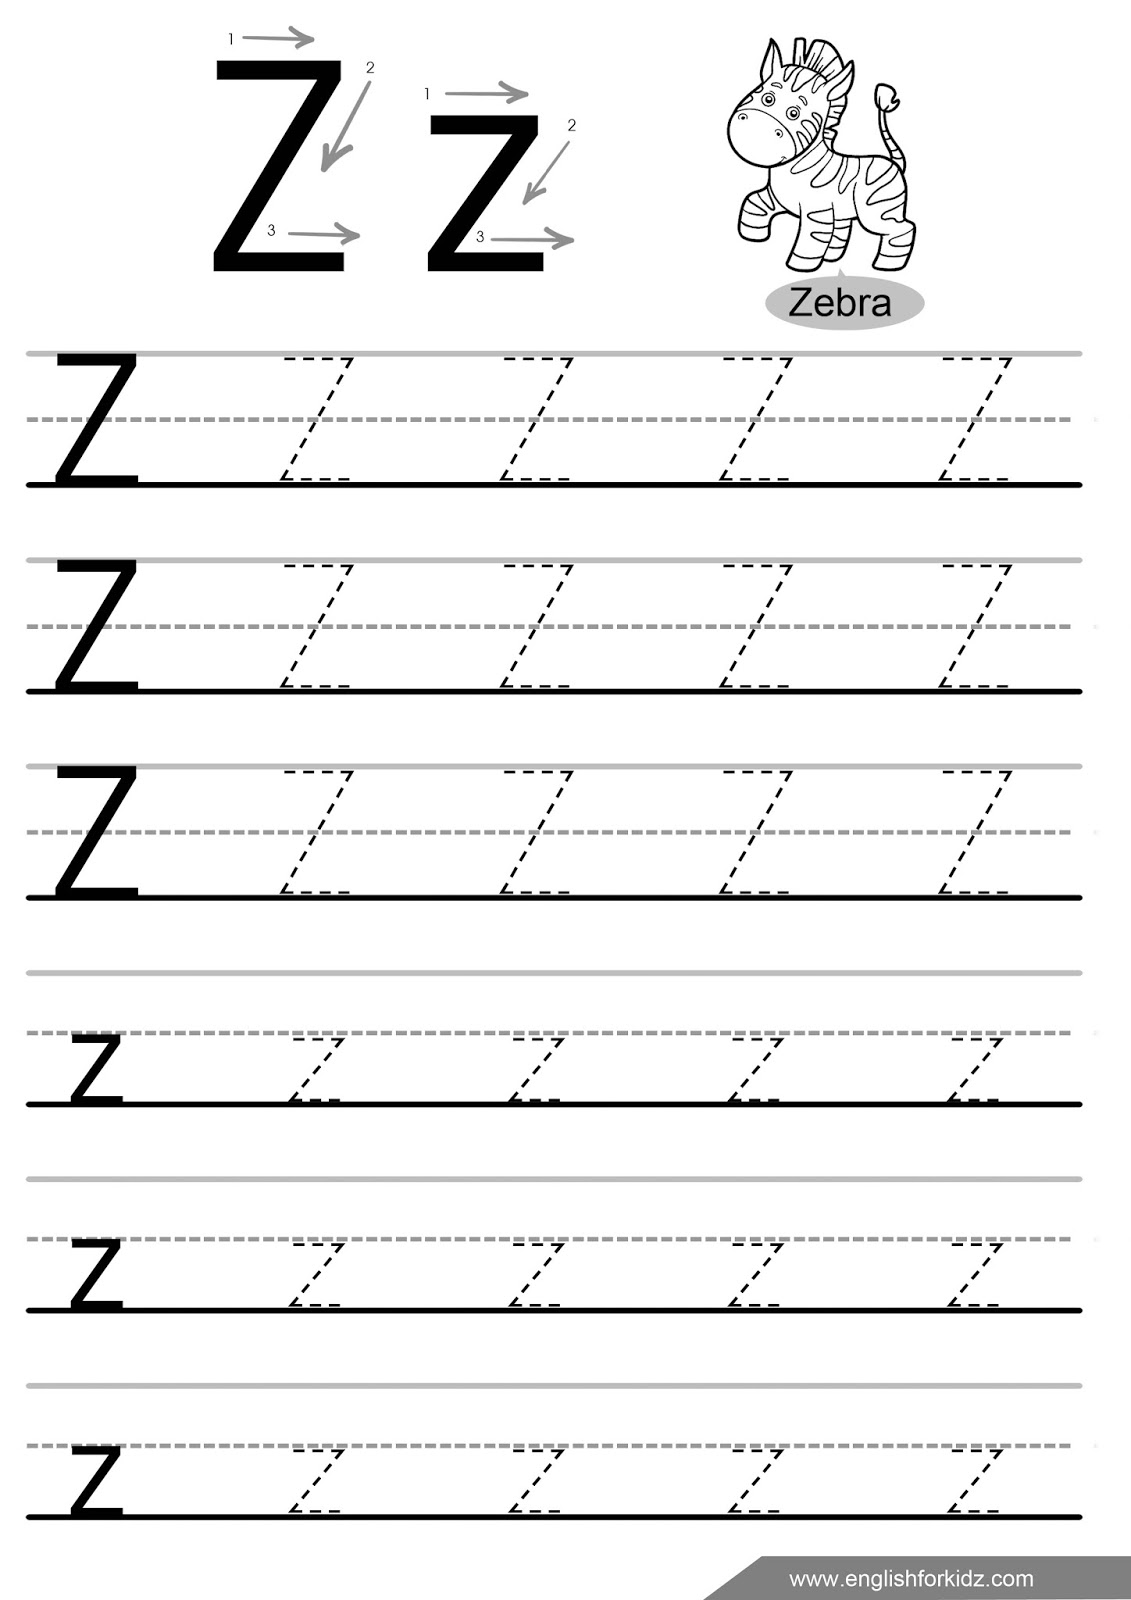 letter tracing worksheets letters u z. Black Bedroom Furniture Sets. Home Design Ideas